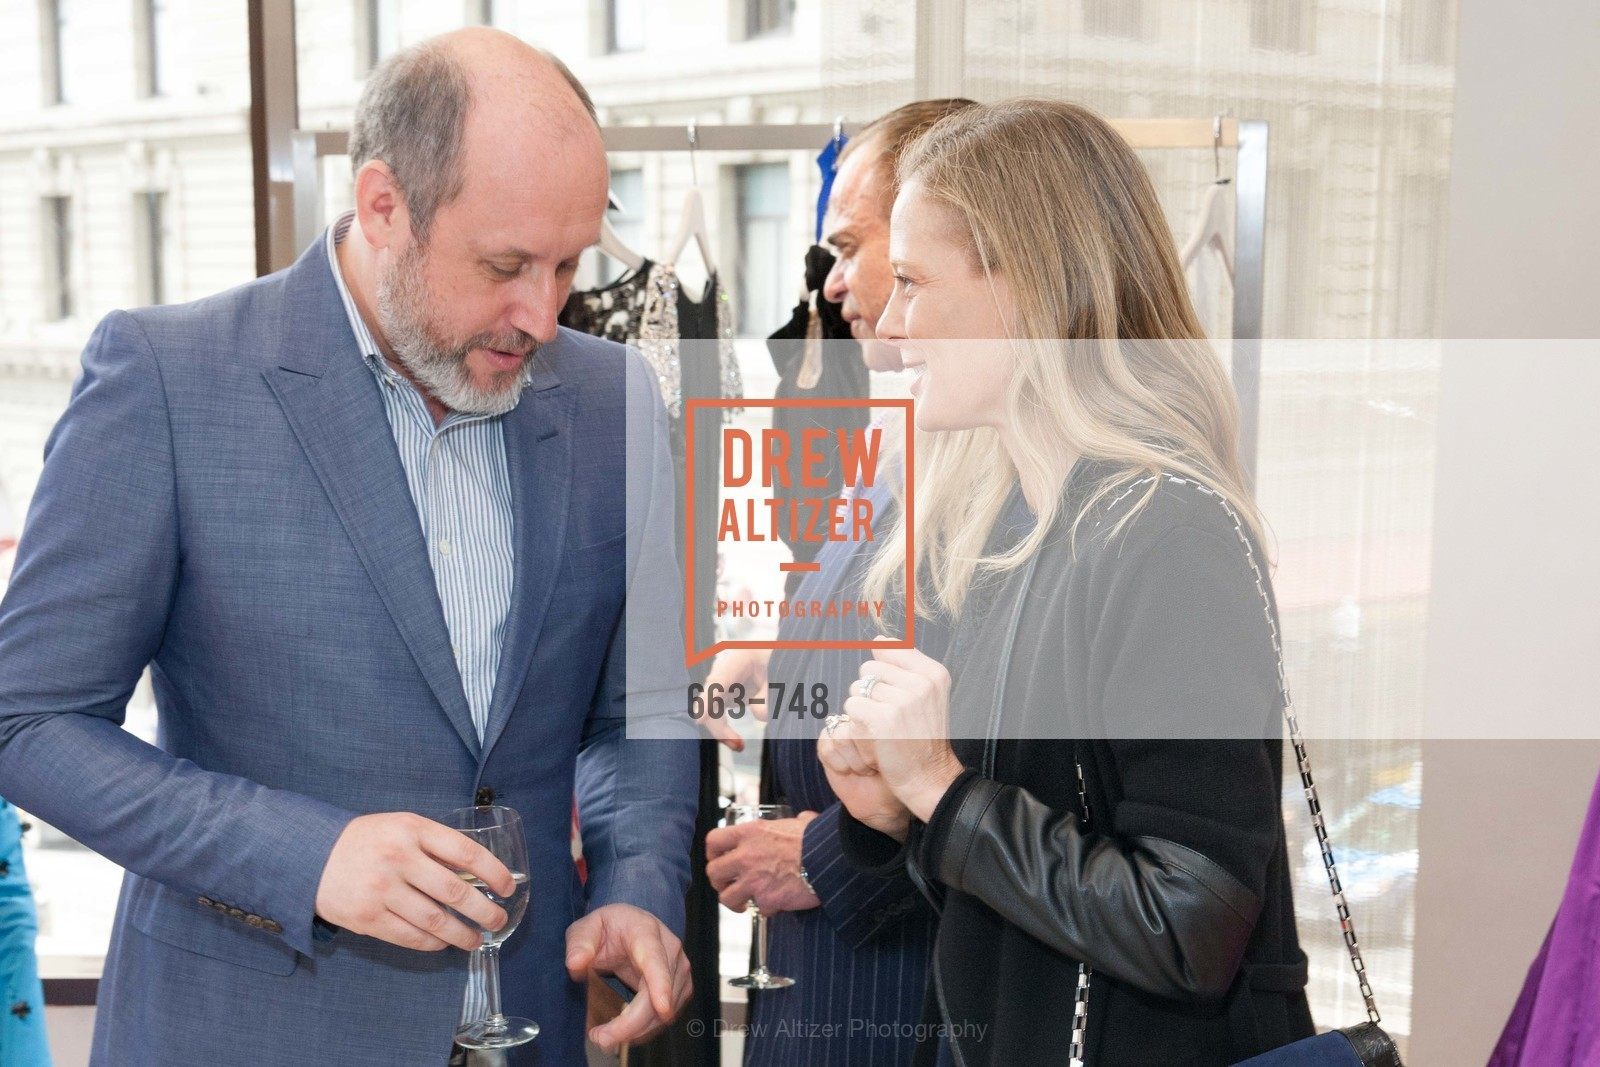 Peter Copping, Katie Traina, PETER COPPING Makes Personal Appearance at SAKS FIFTH AVENUE, US, May 21st, 2015,Drew Altizer, Drew Altizer Photography, full-service agency, private events, San Francisco photographer, photographer california